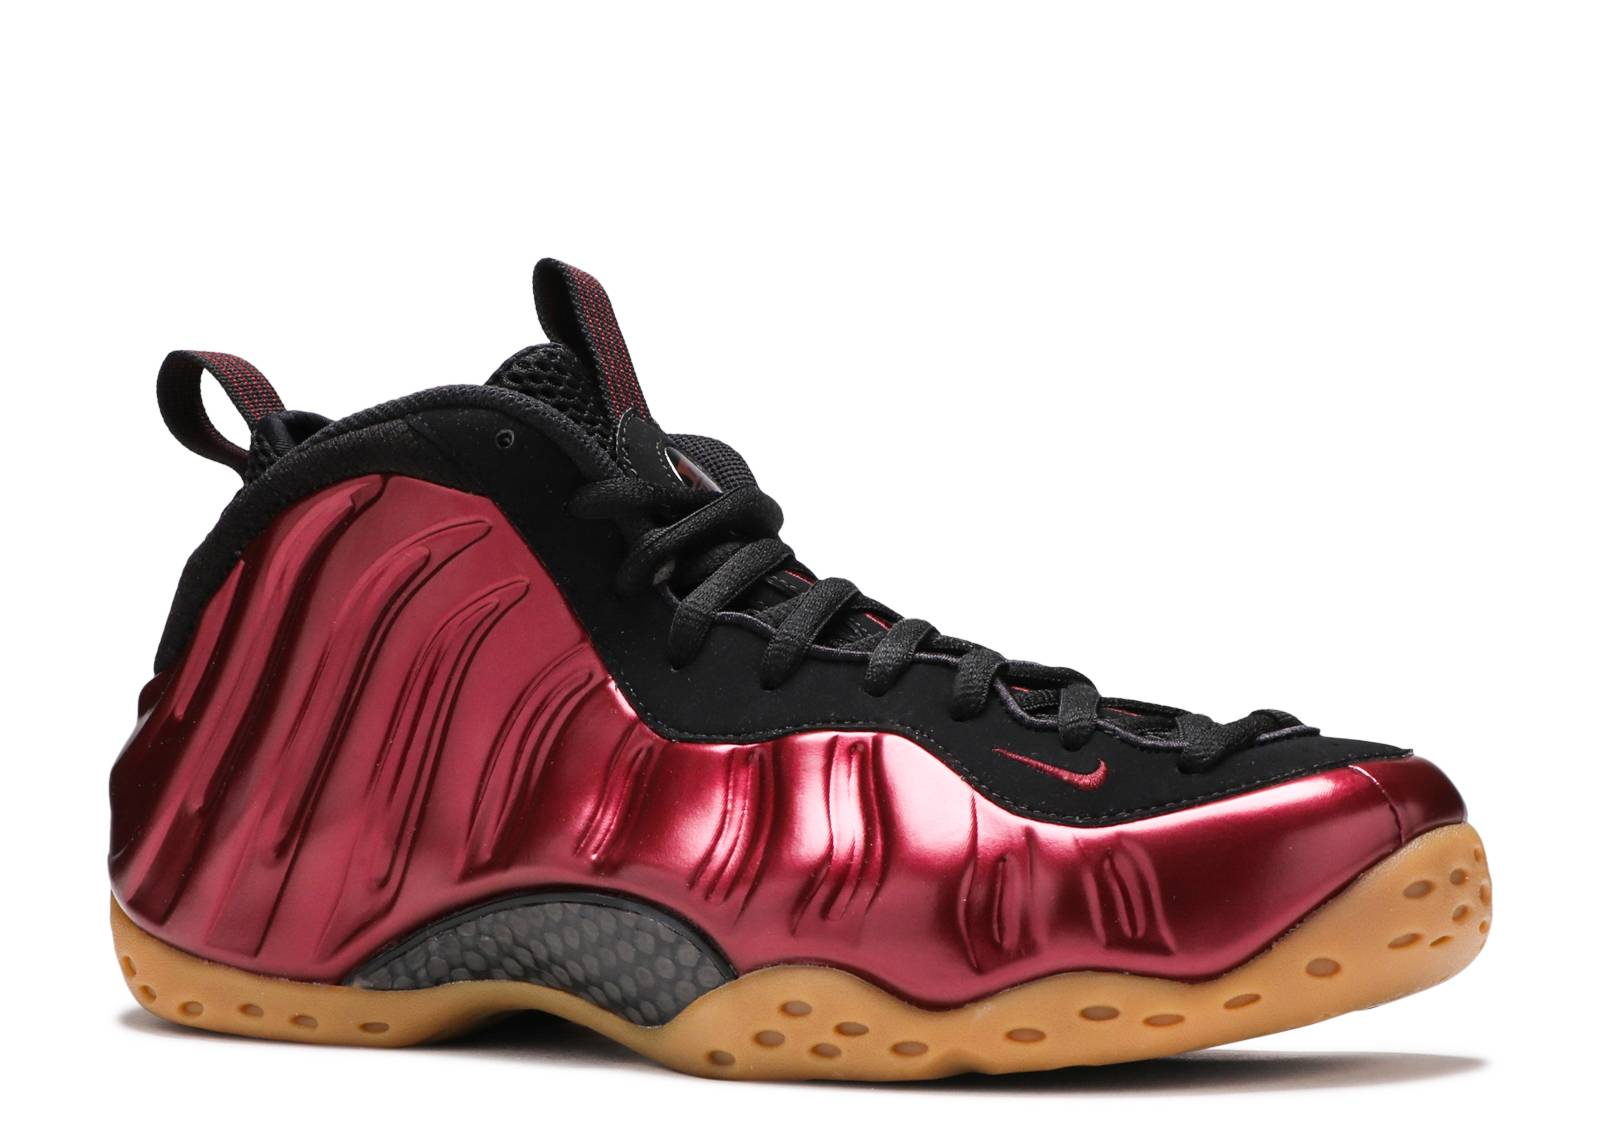 3ccce14e8fd7a ... Air Foamposite One - Nike - 314996 601 - night maroon night maroon-blac  Flight ...